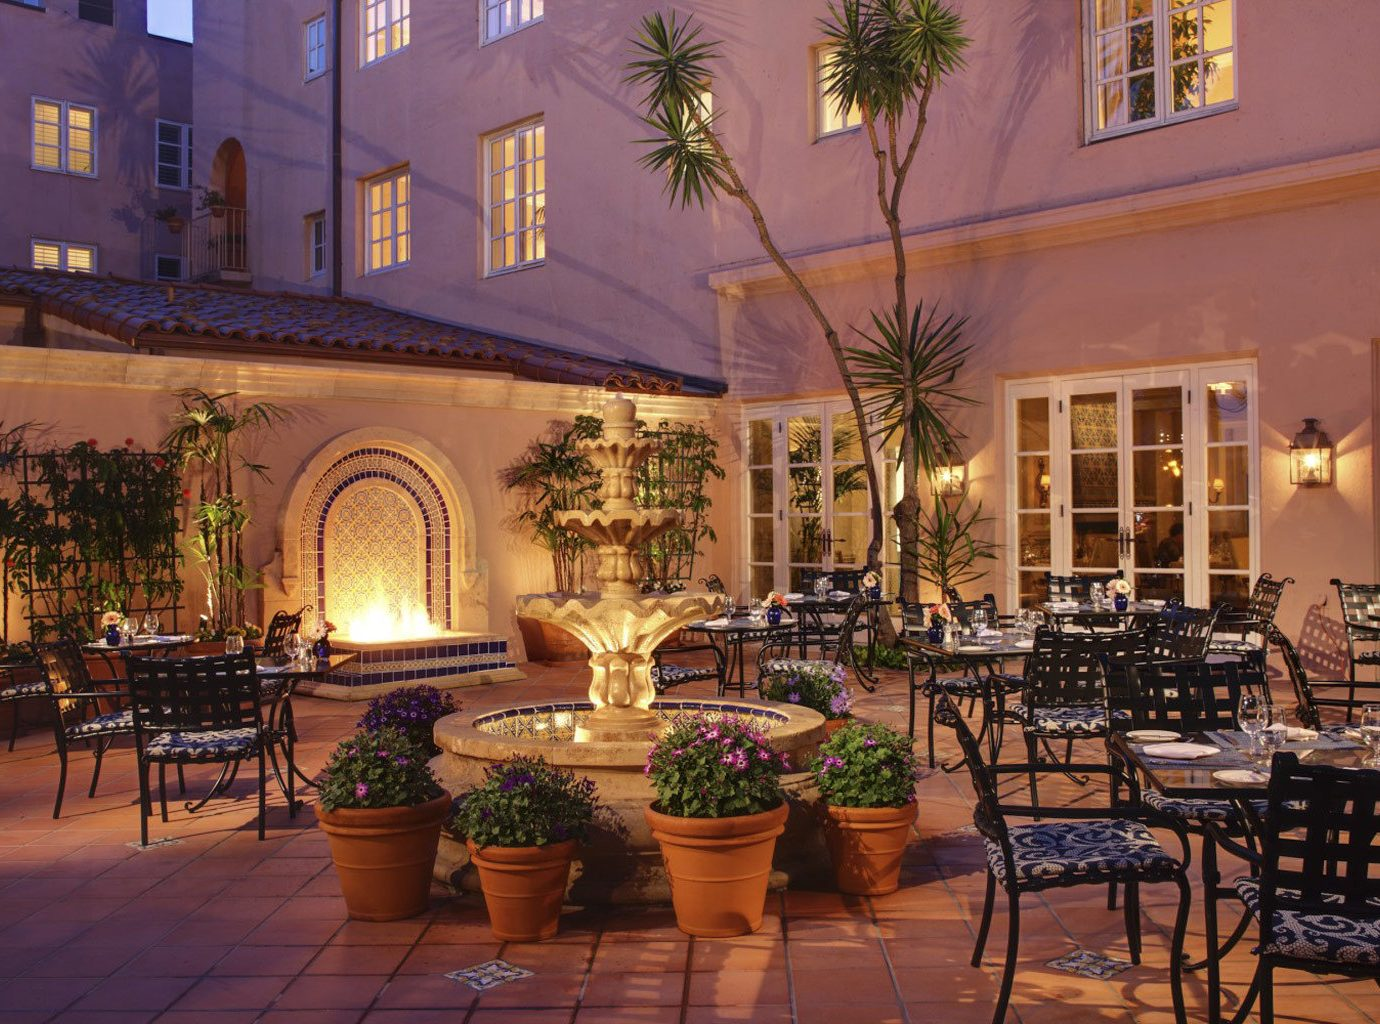 Dining Drink Eat Elegant Luxury Patio Terrace chair property Lobby restaurant Courtyard home palace hacienda Resort mansion